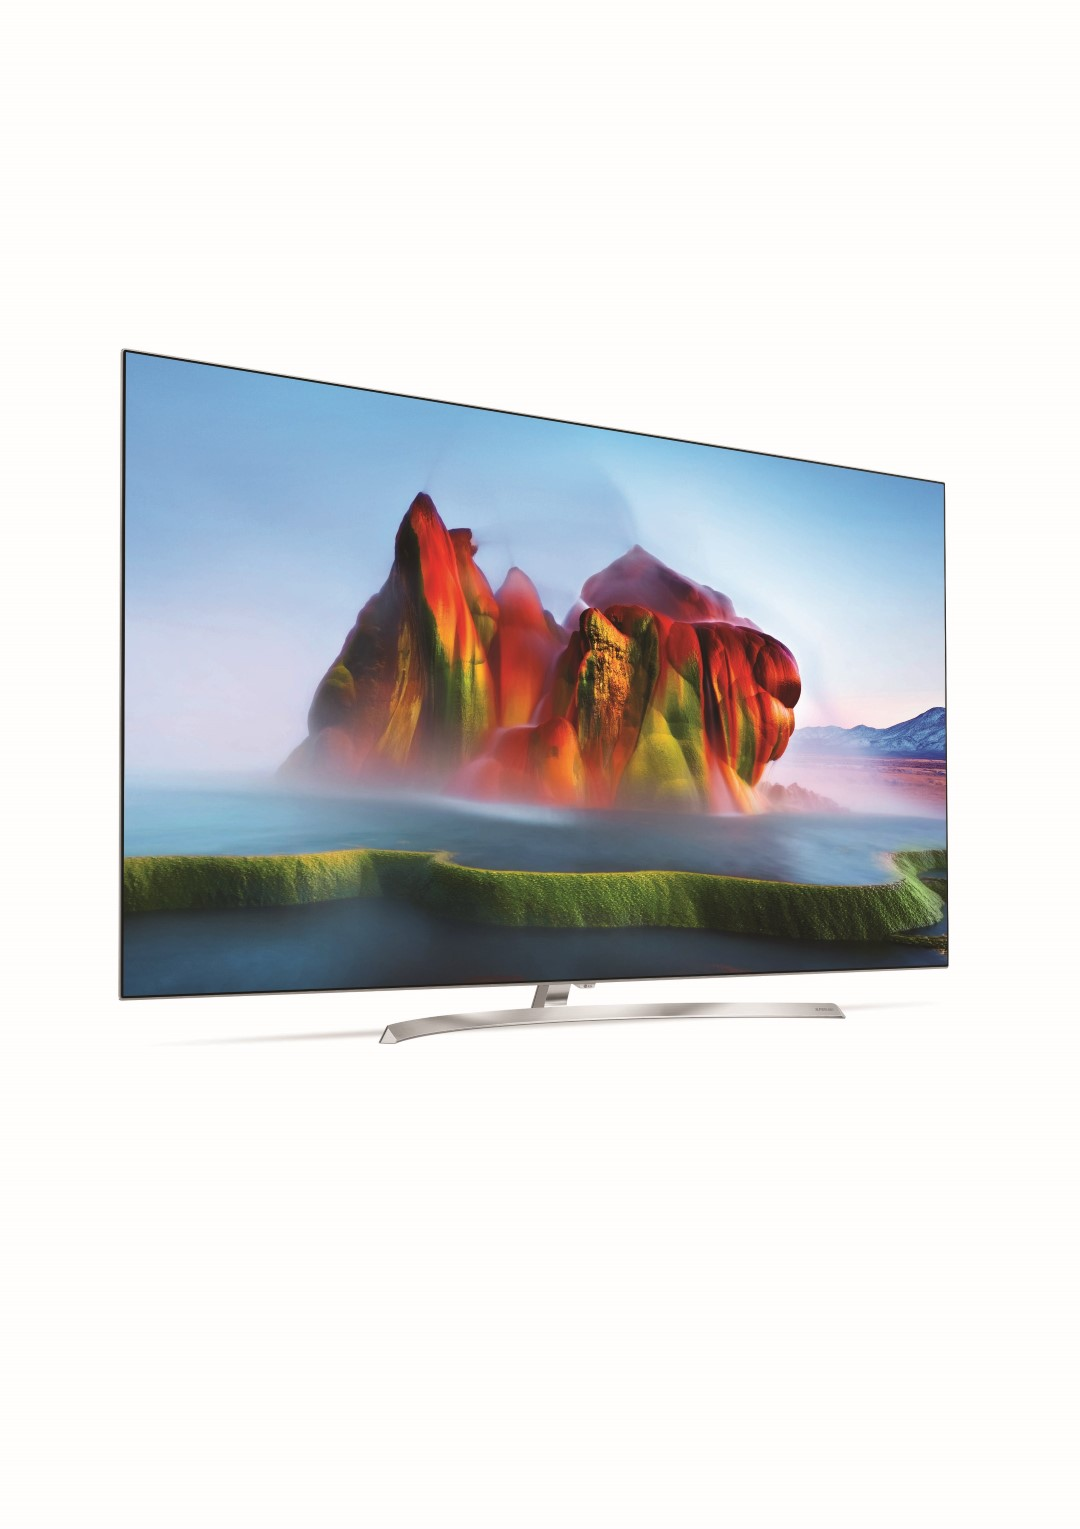 LG SUPER UHD TV with NanoCell Dispaly_SJ9500 (Large)